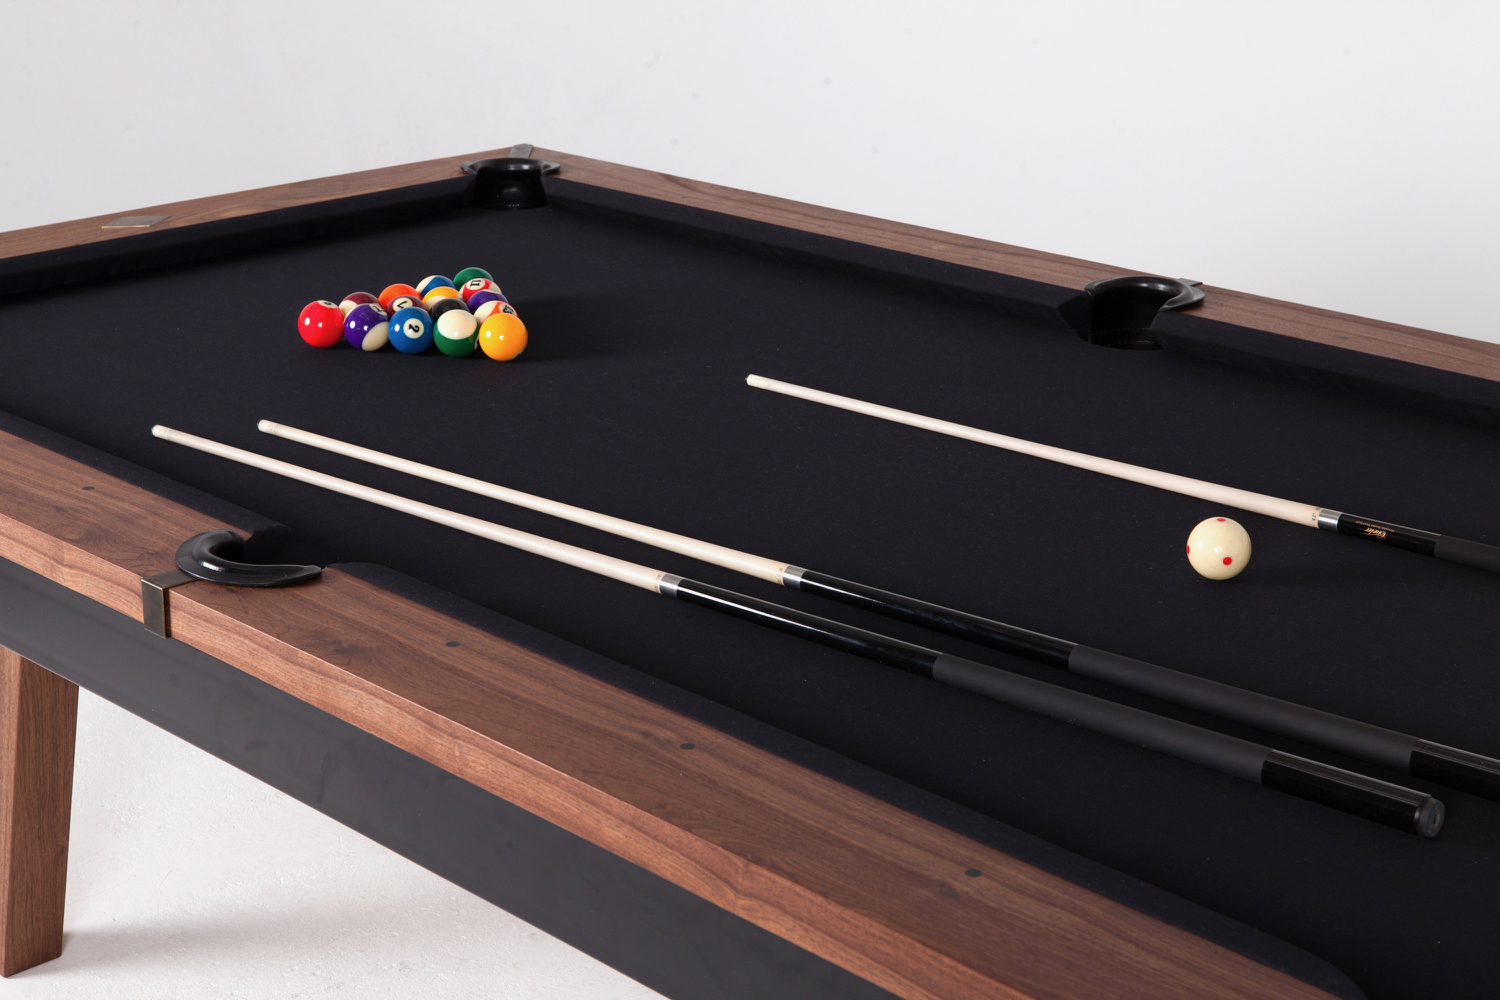 POOLTABLE-WEB - 14.jpg